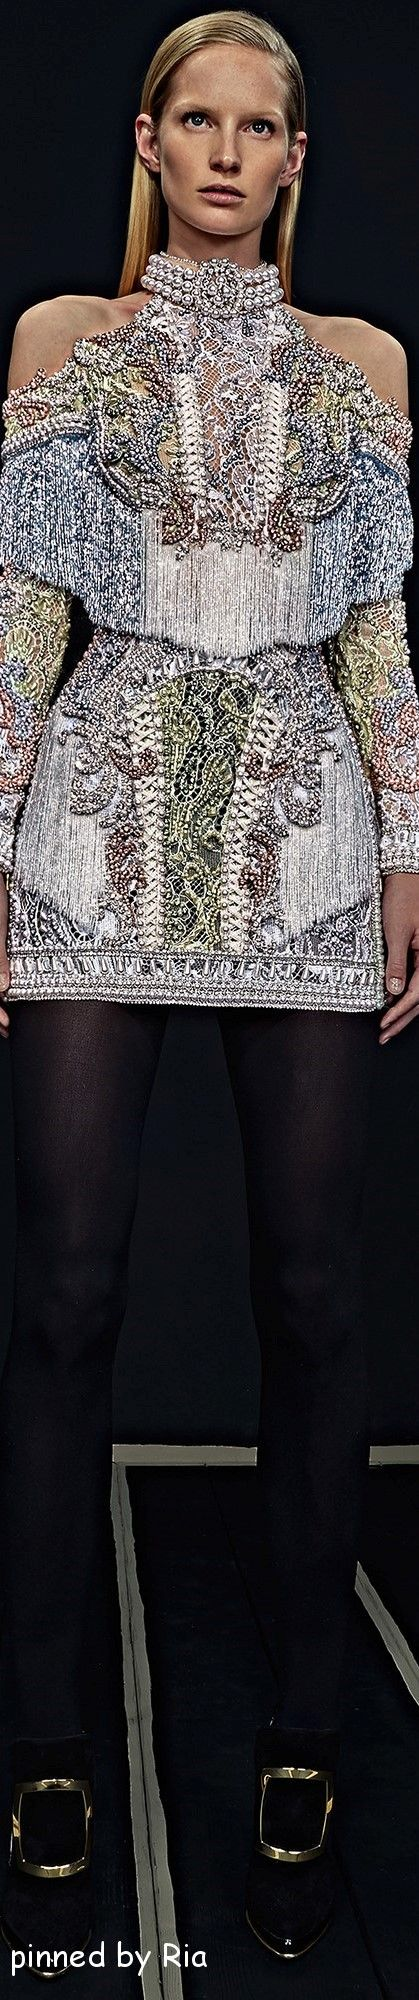 BALMAIN PRE FALL 2016 FASHION SHOW